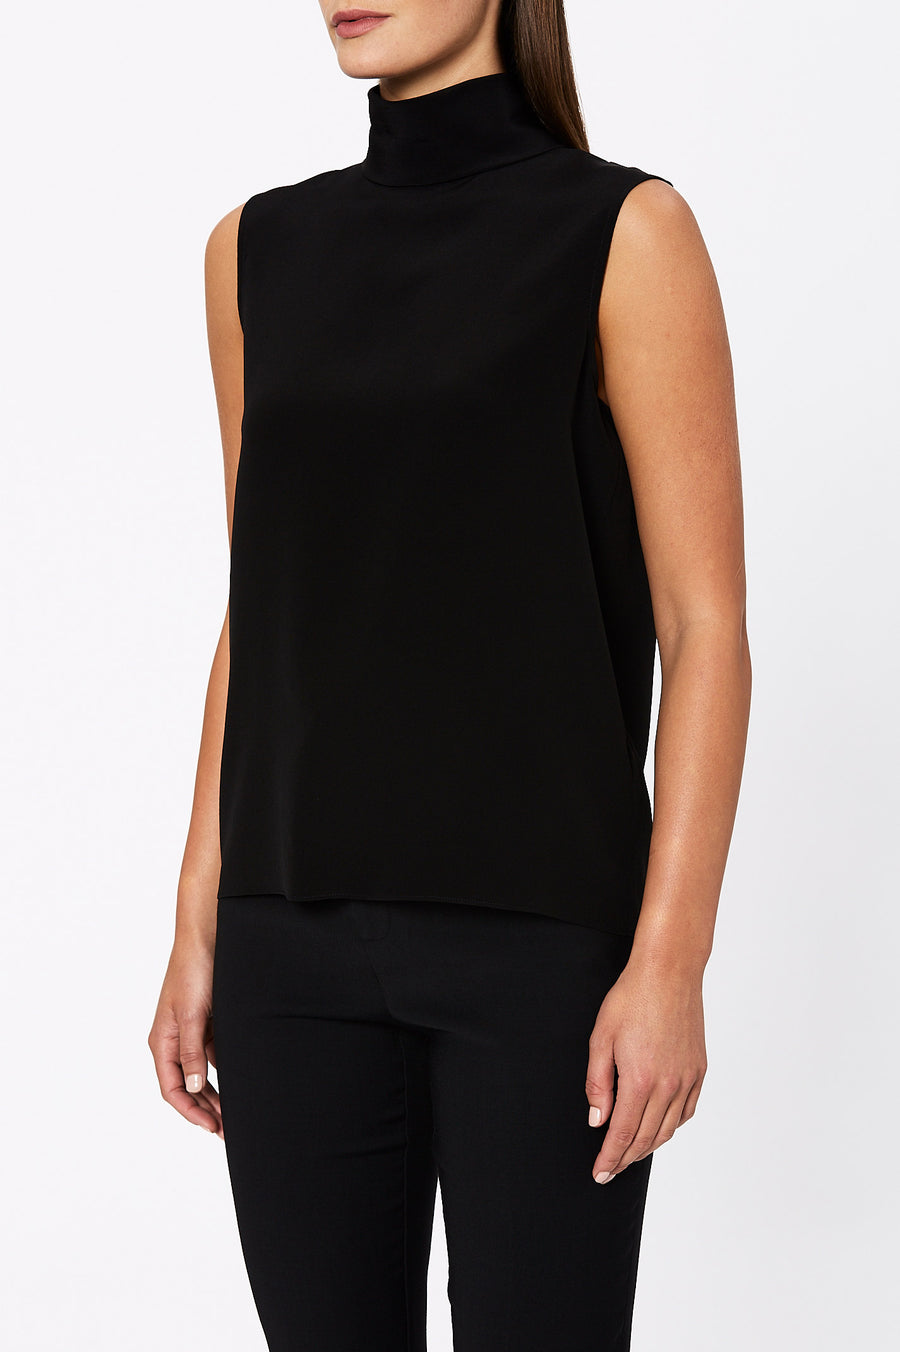 Invest in timeless quality pieces by introducing the Silk Roll Neck tank to your winter wardrobe